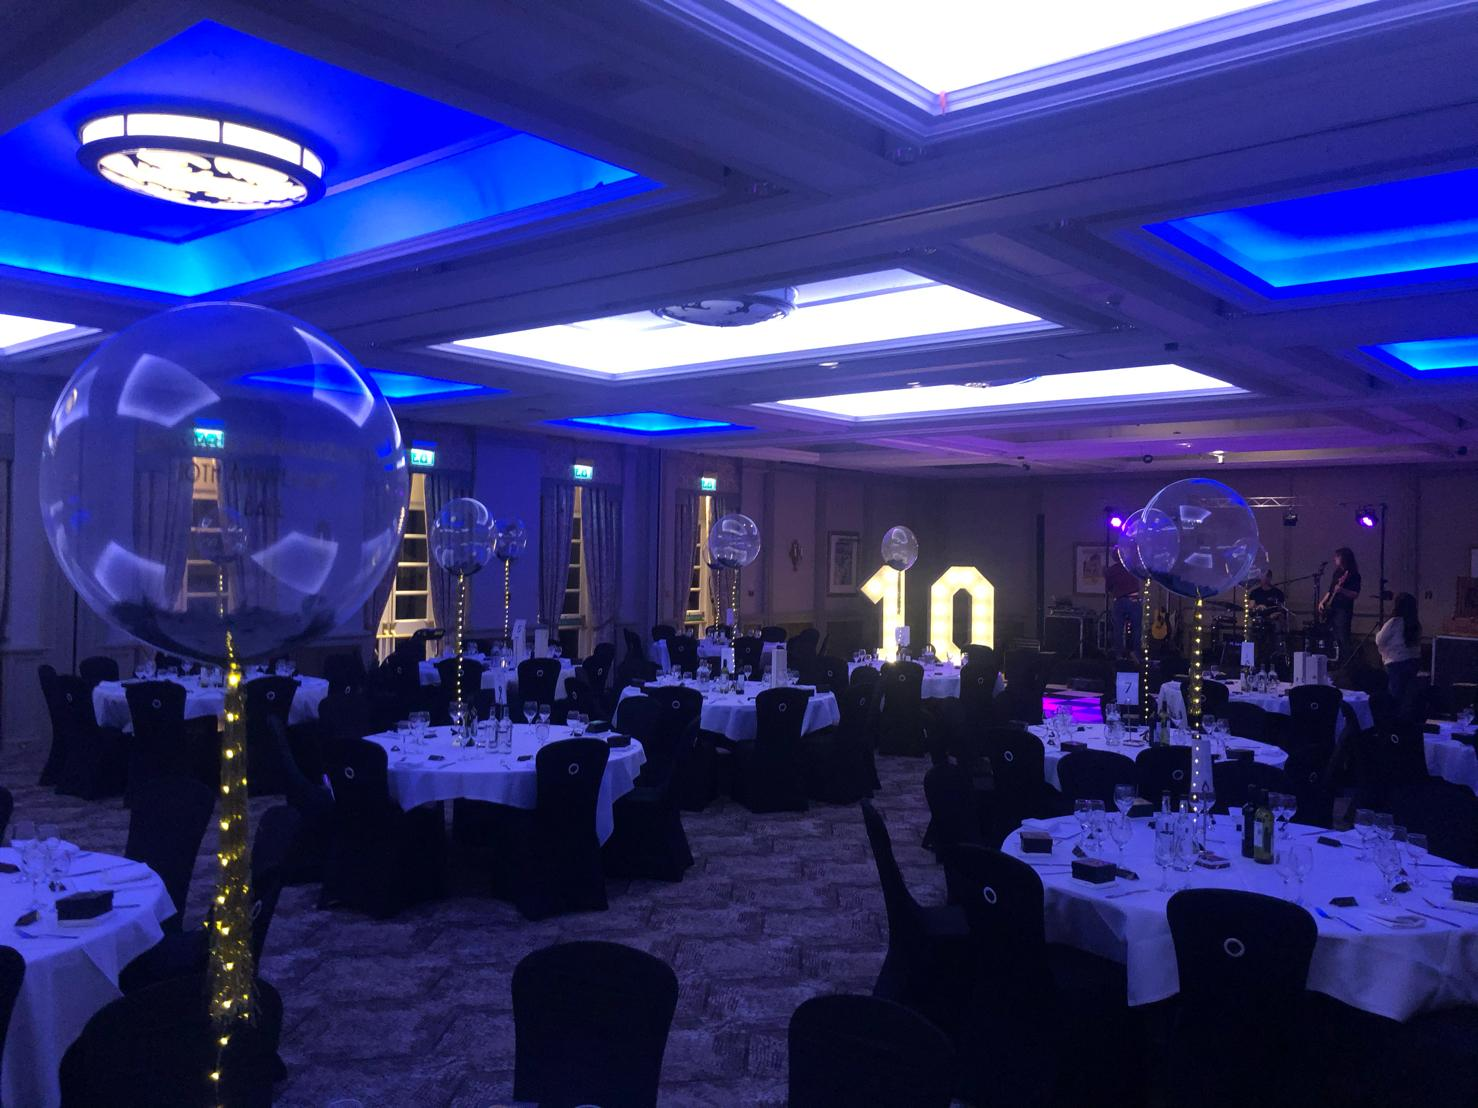 Sands Wealth Management 10th Year Anniversary Ball